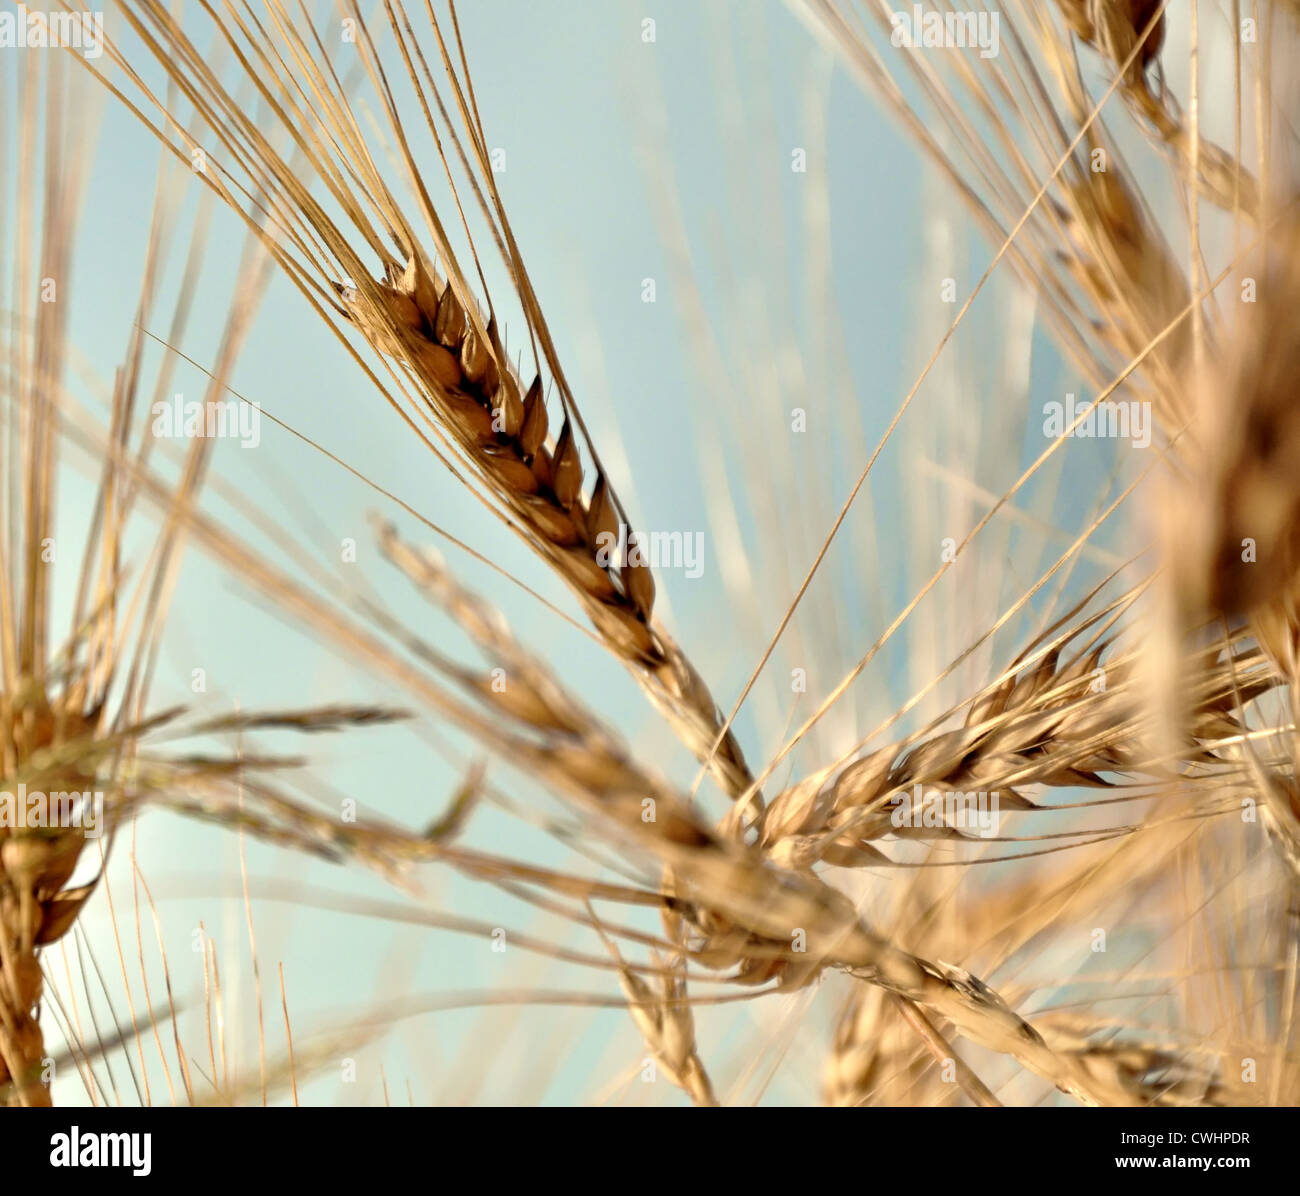 grain, grain Photo Stock